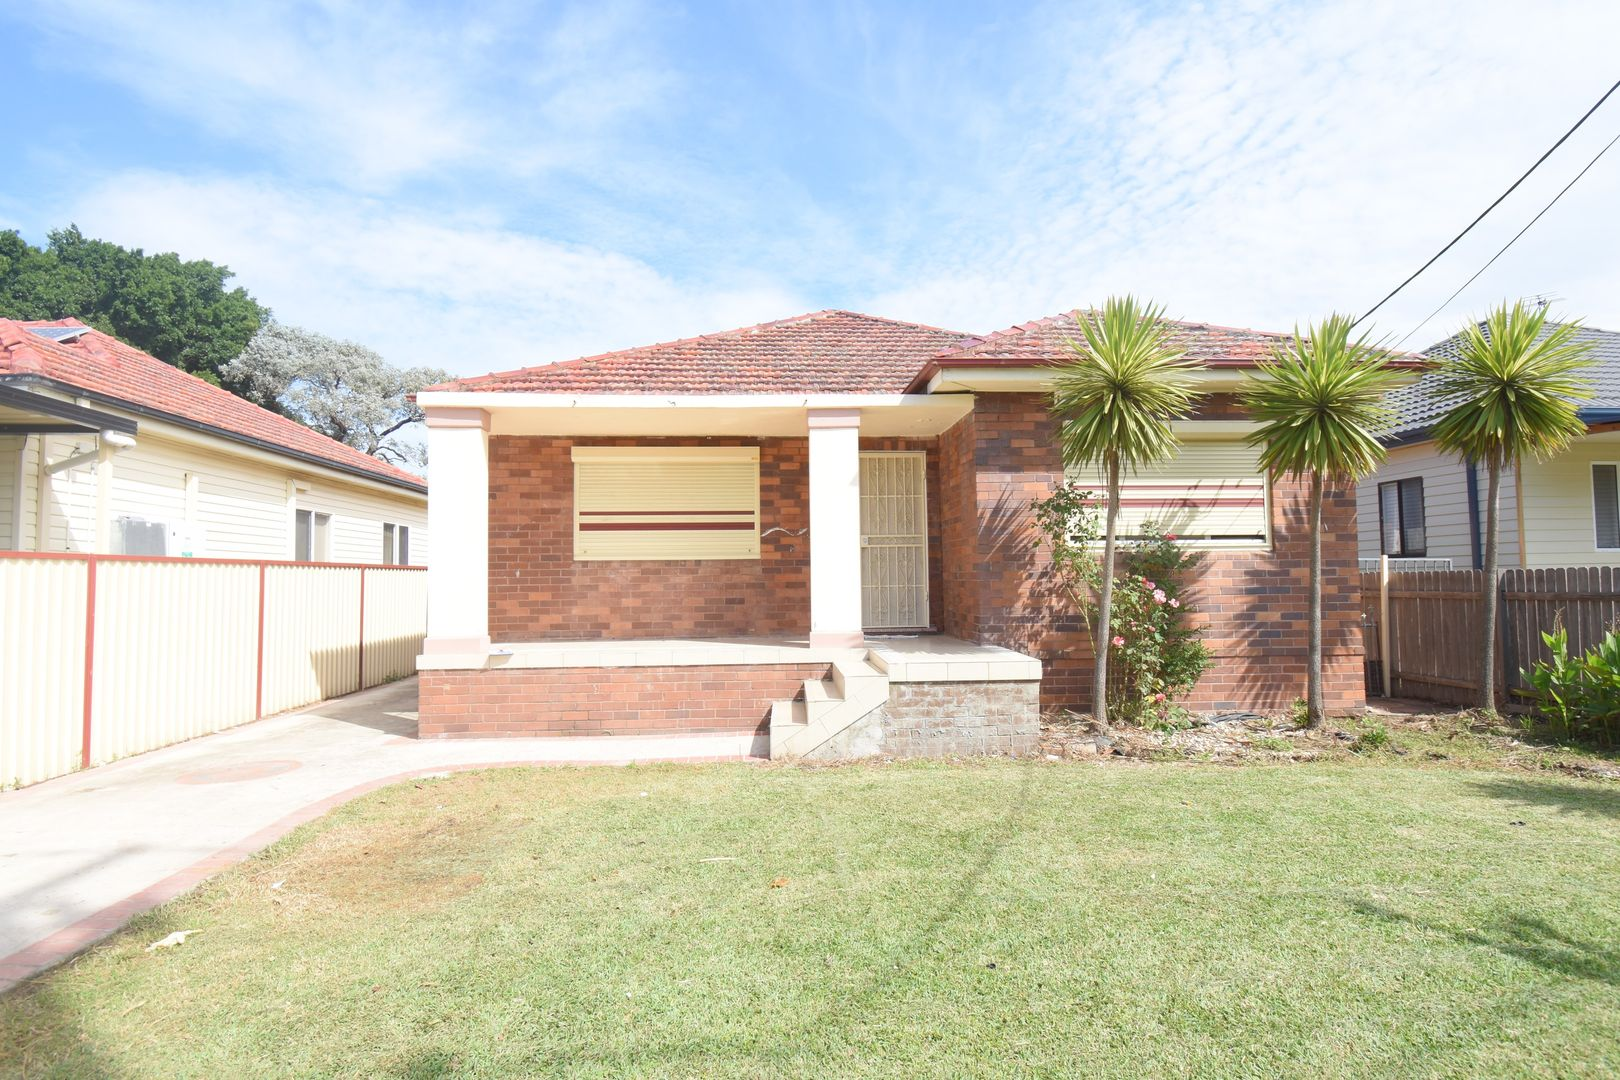 51 Virgil  Avenue, Sefton NSW 2162, Image 0